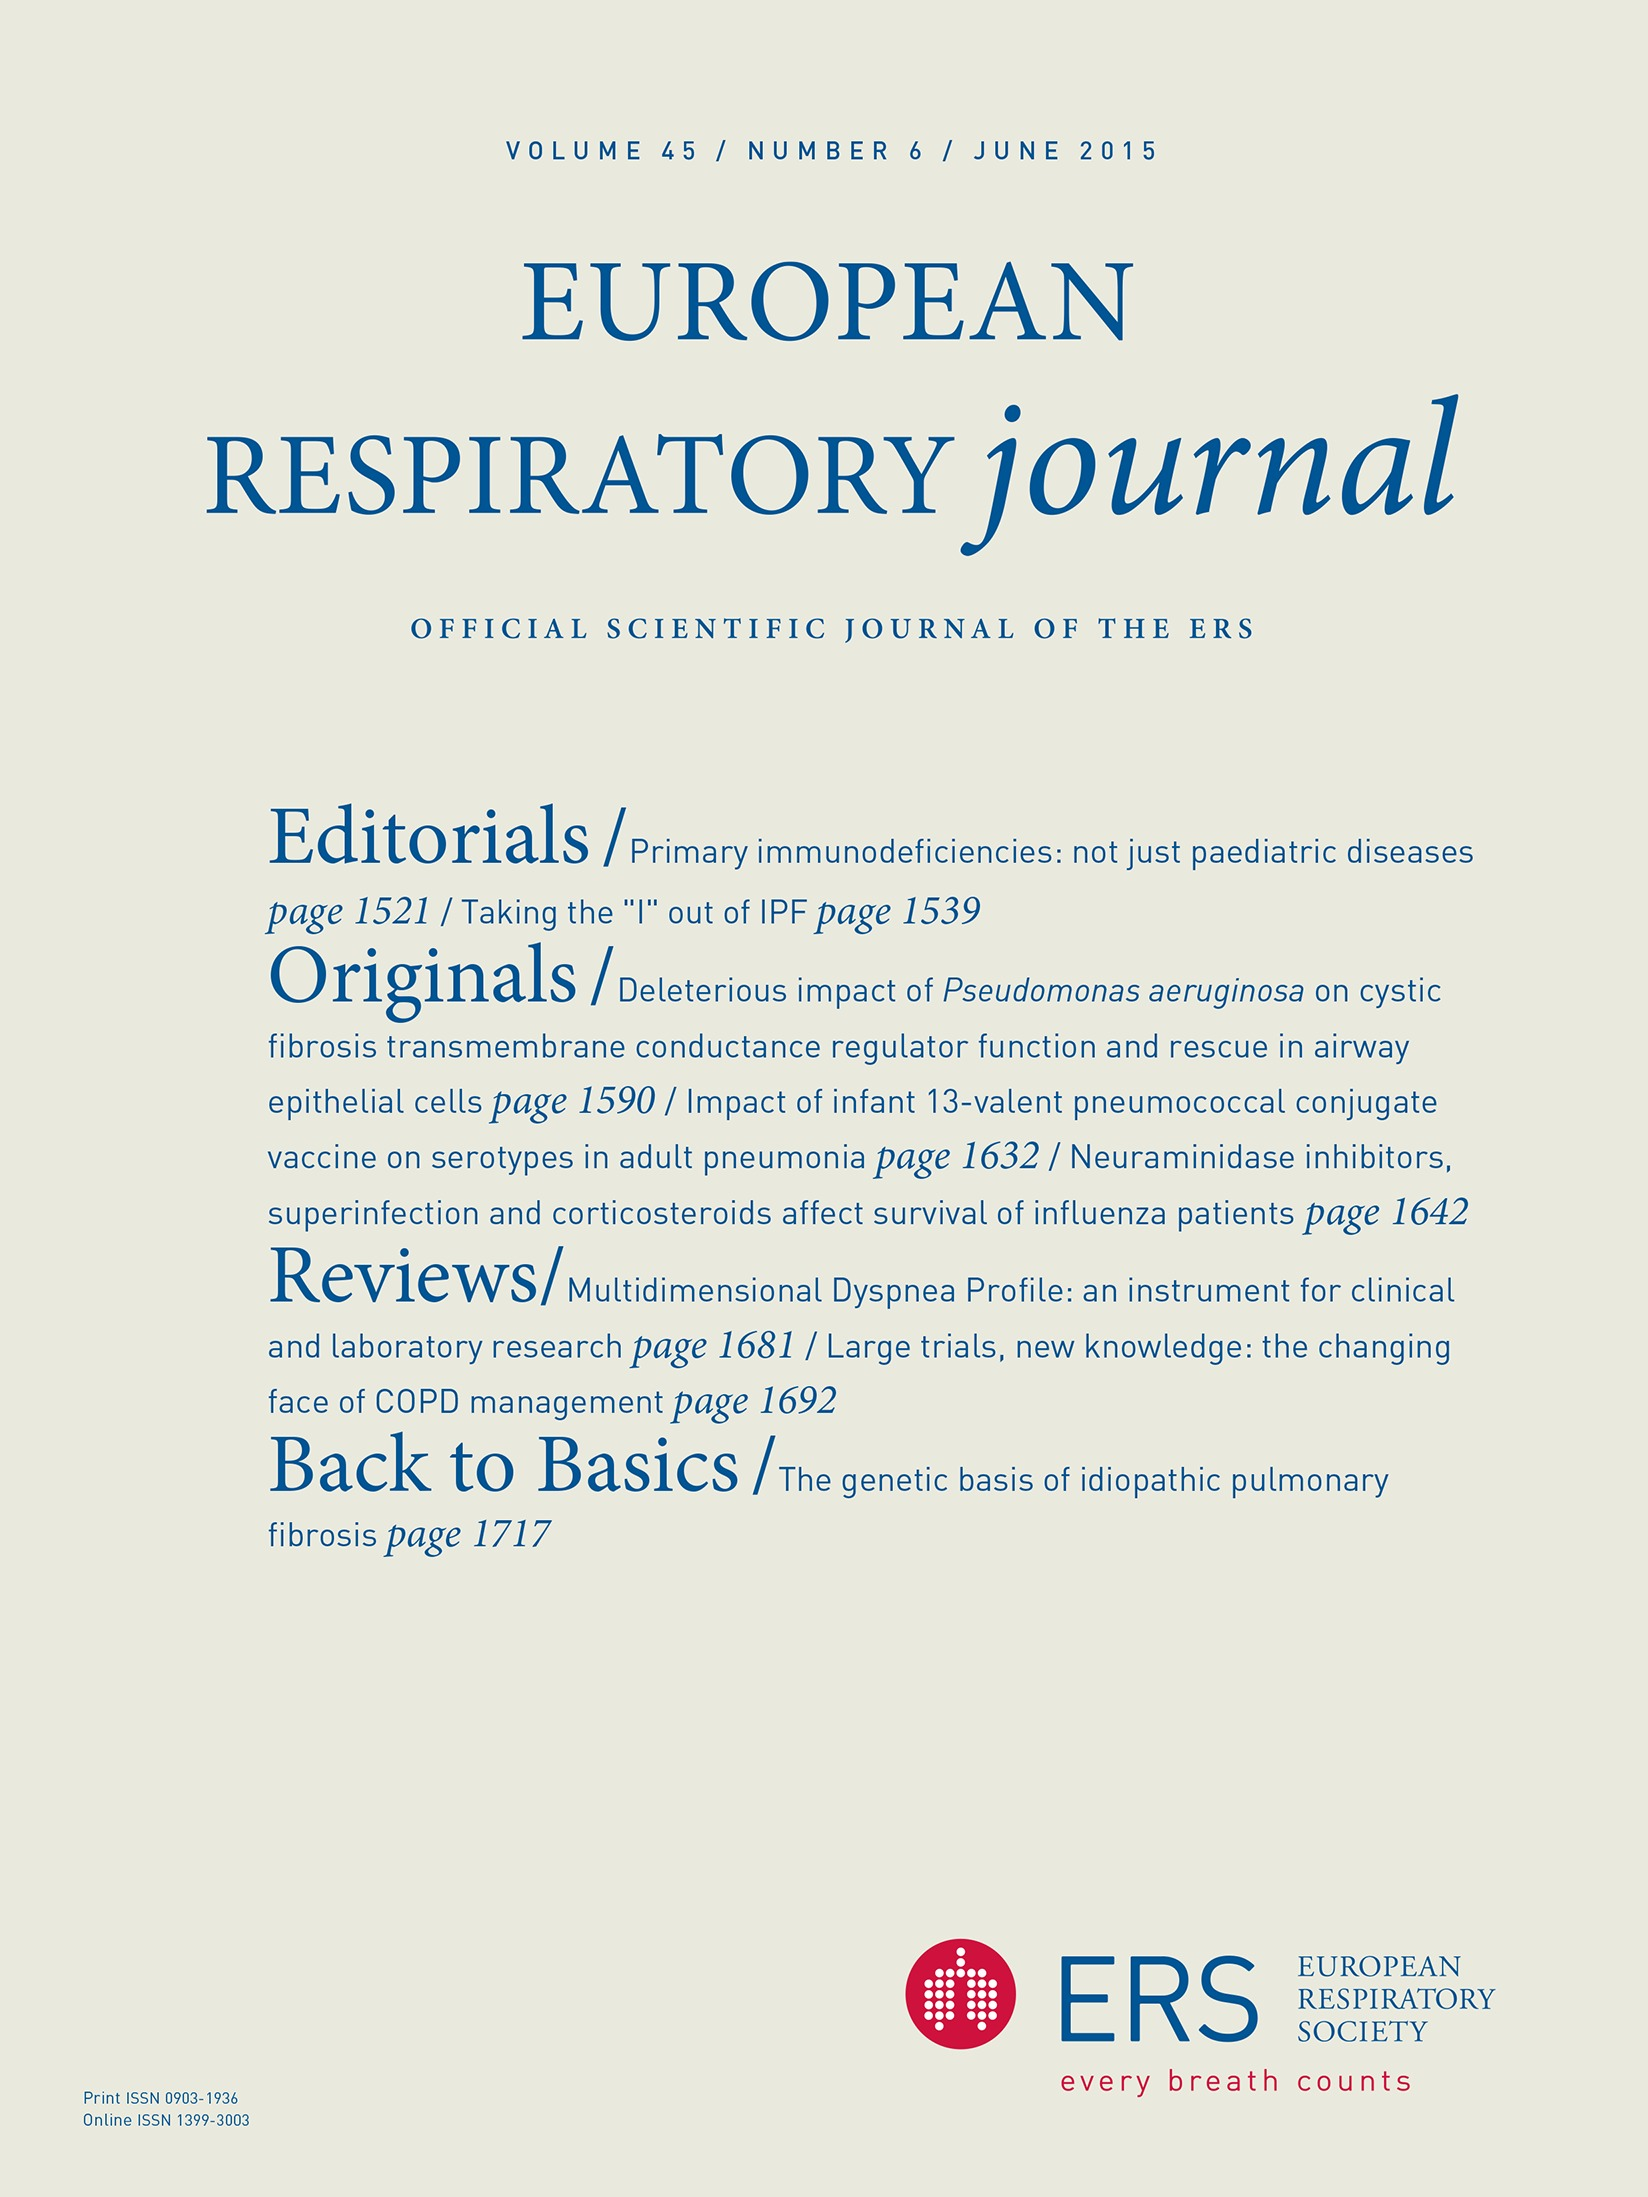 Large trials, new knowledge: the changing face of COPD management |  European Respiratory Society